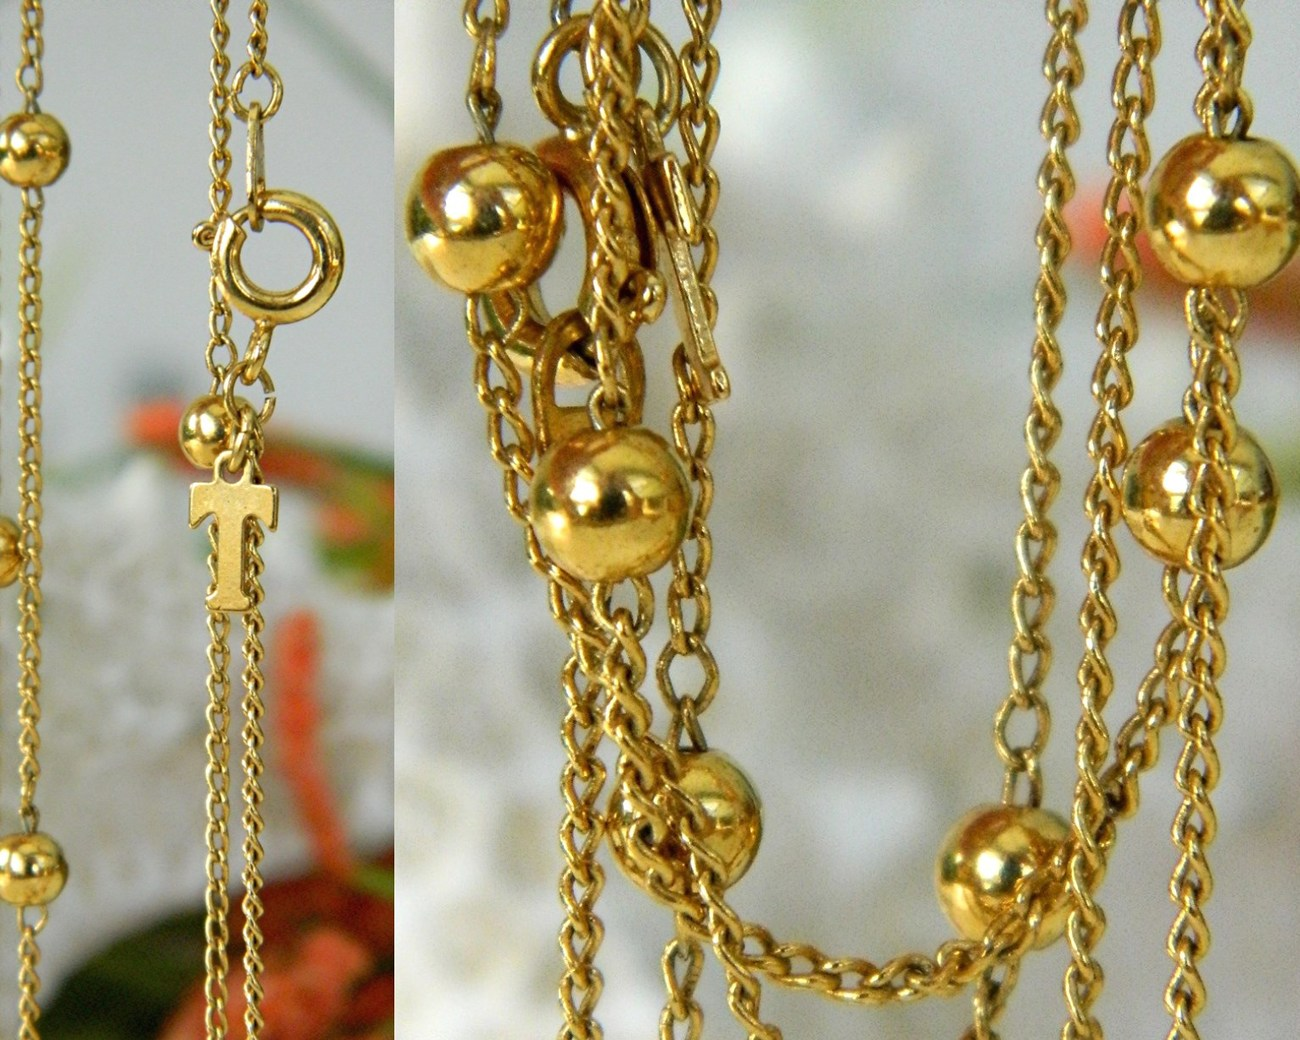 Vintage Trifari Long Chain Necklace Gold Tone Bead Accents